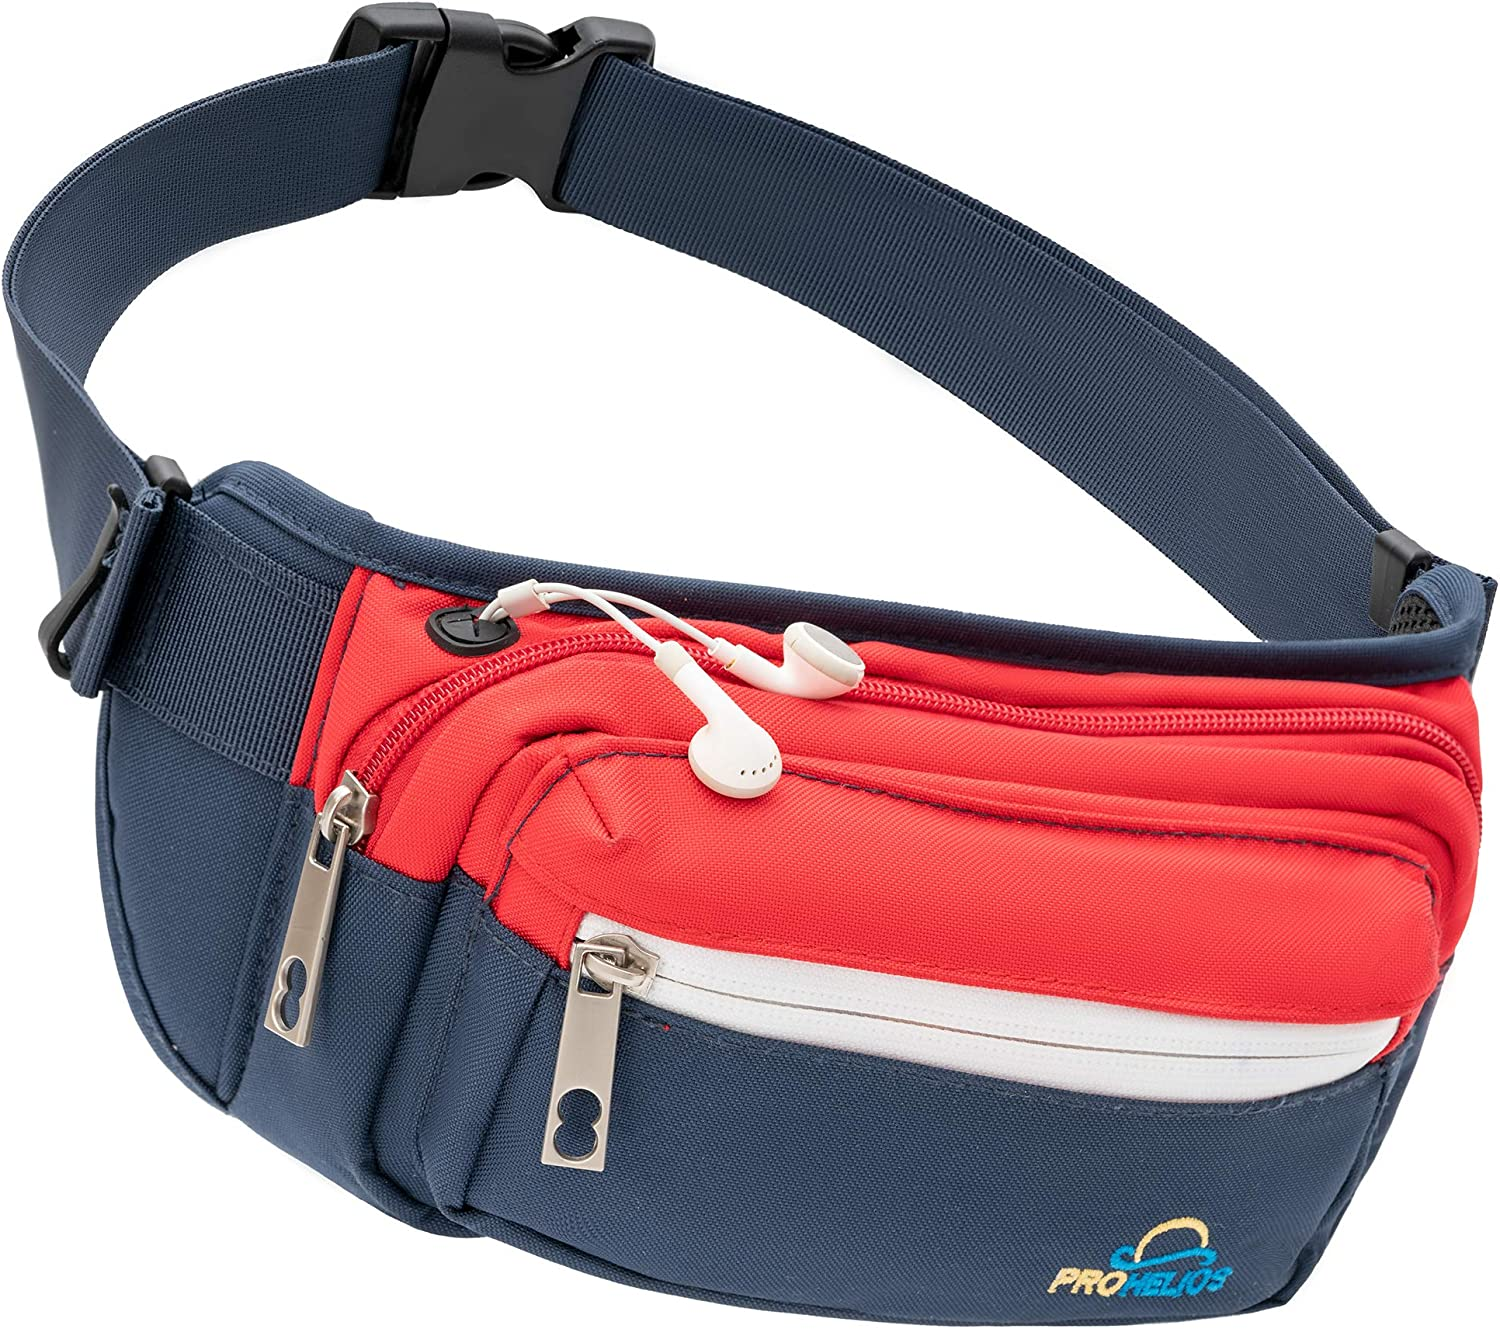 Pro Helios Premium Fanny Packs for Men & Women Water Resistant Waist Bag for Outdoor Activities, Traveling, Hiking, Biking, Running & More   Fannie Pack for Women